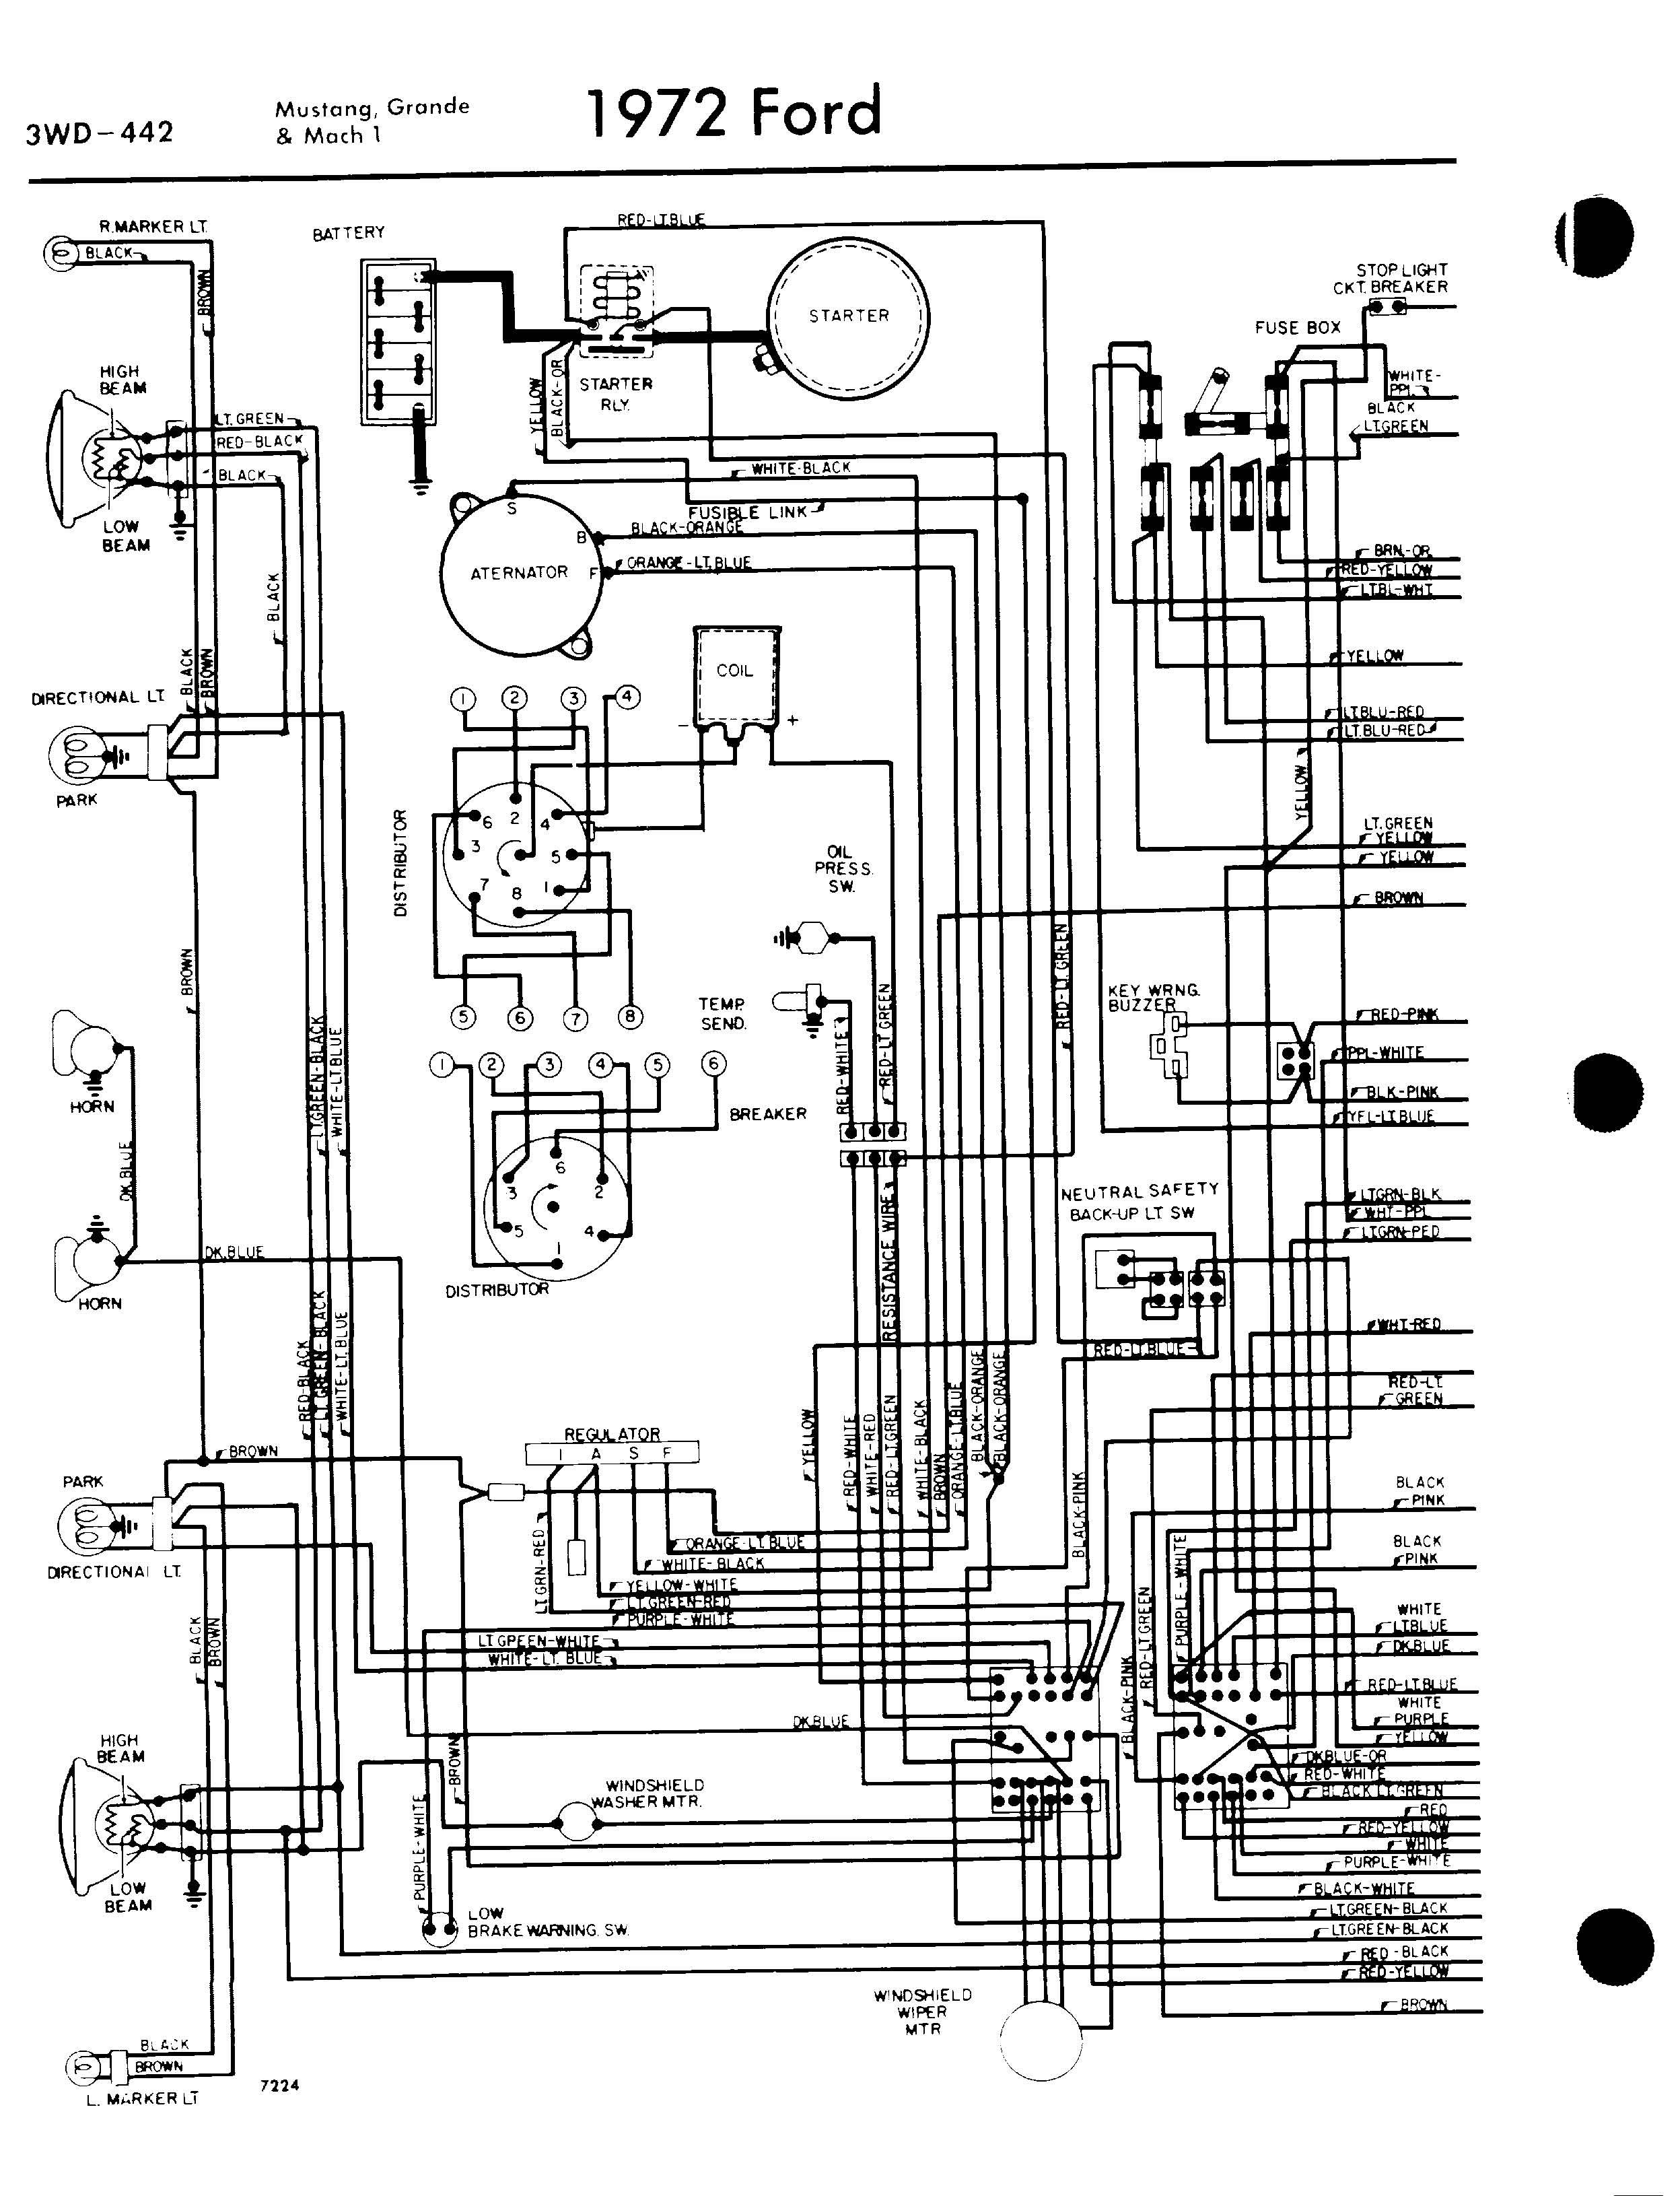 1973 Mustang Mach 1 Headlight Wiring Diagram Basic Guide 2004 Harness 72 Mach1 Alternator Wire Yahoo Search Results Rh Pinterest Com 1969 Chevelle